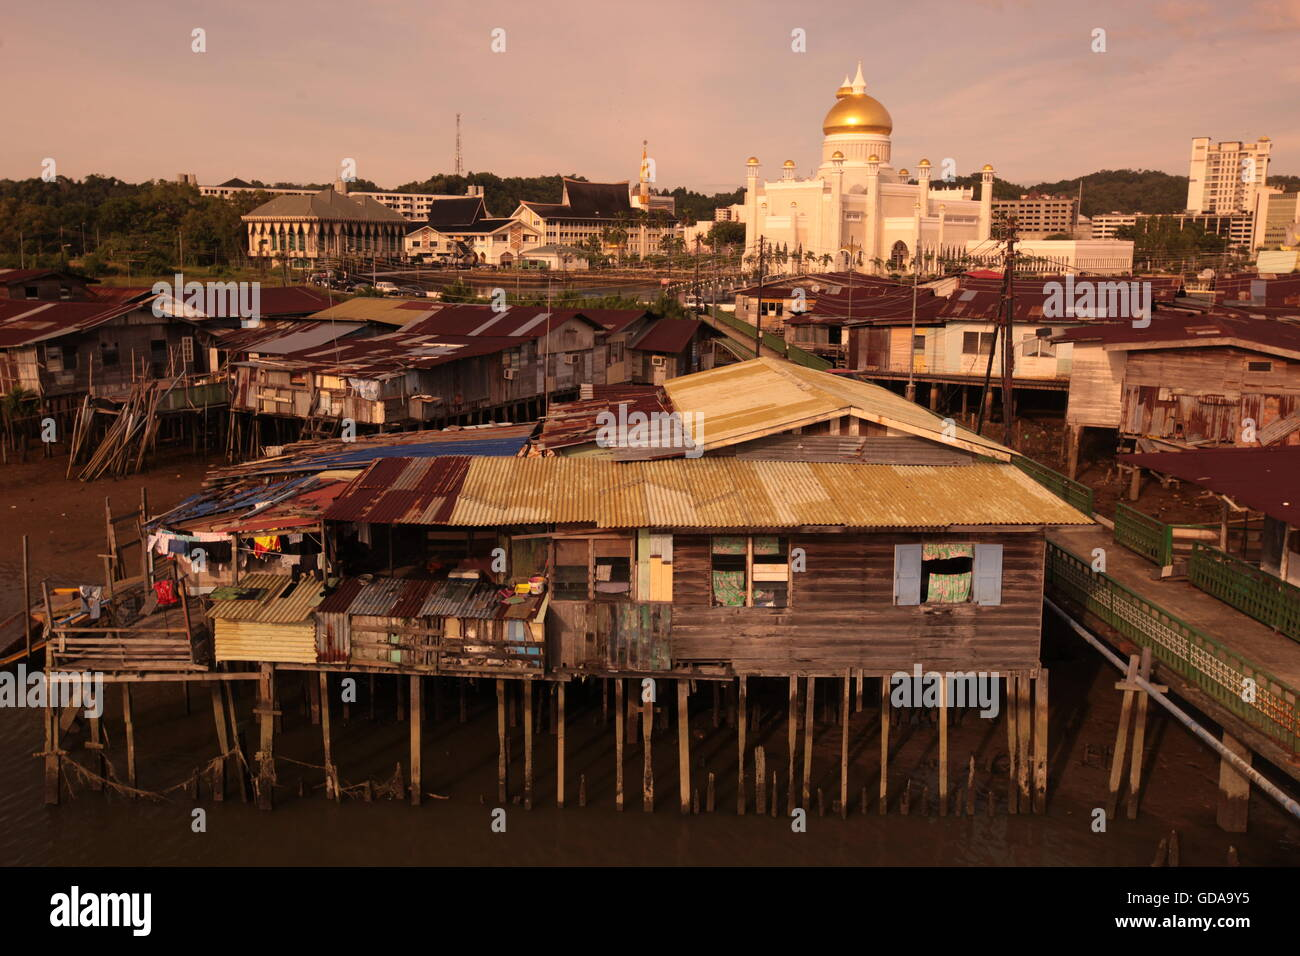 the water village and town of Kampung Ayer in the city of Bandar seri Begawan in the country of Brunei Darussalam - Stock Image